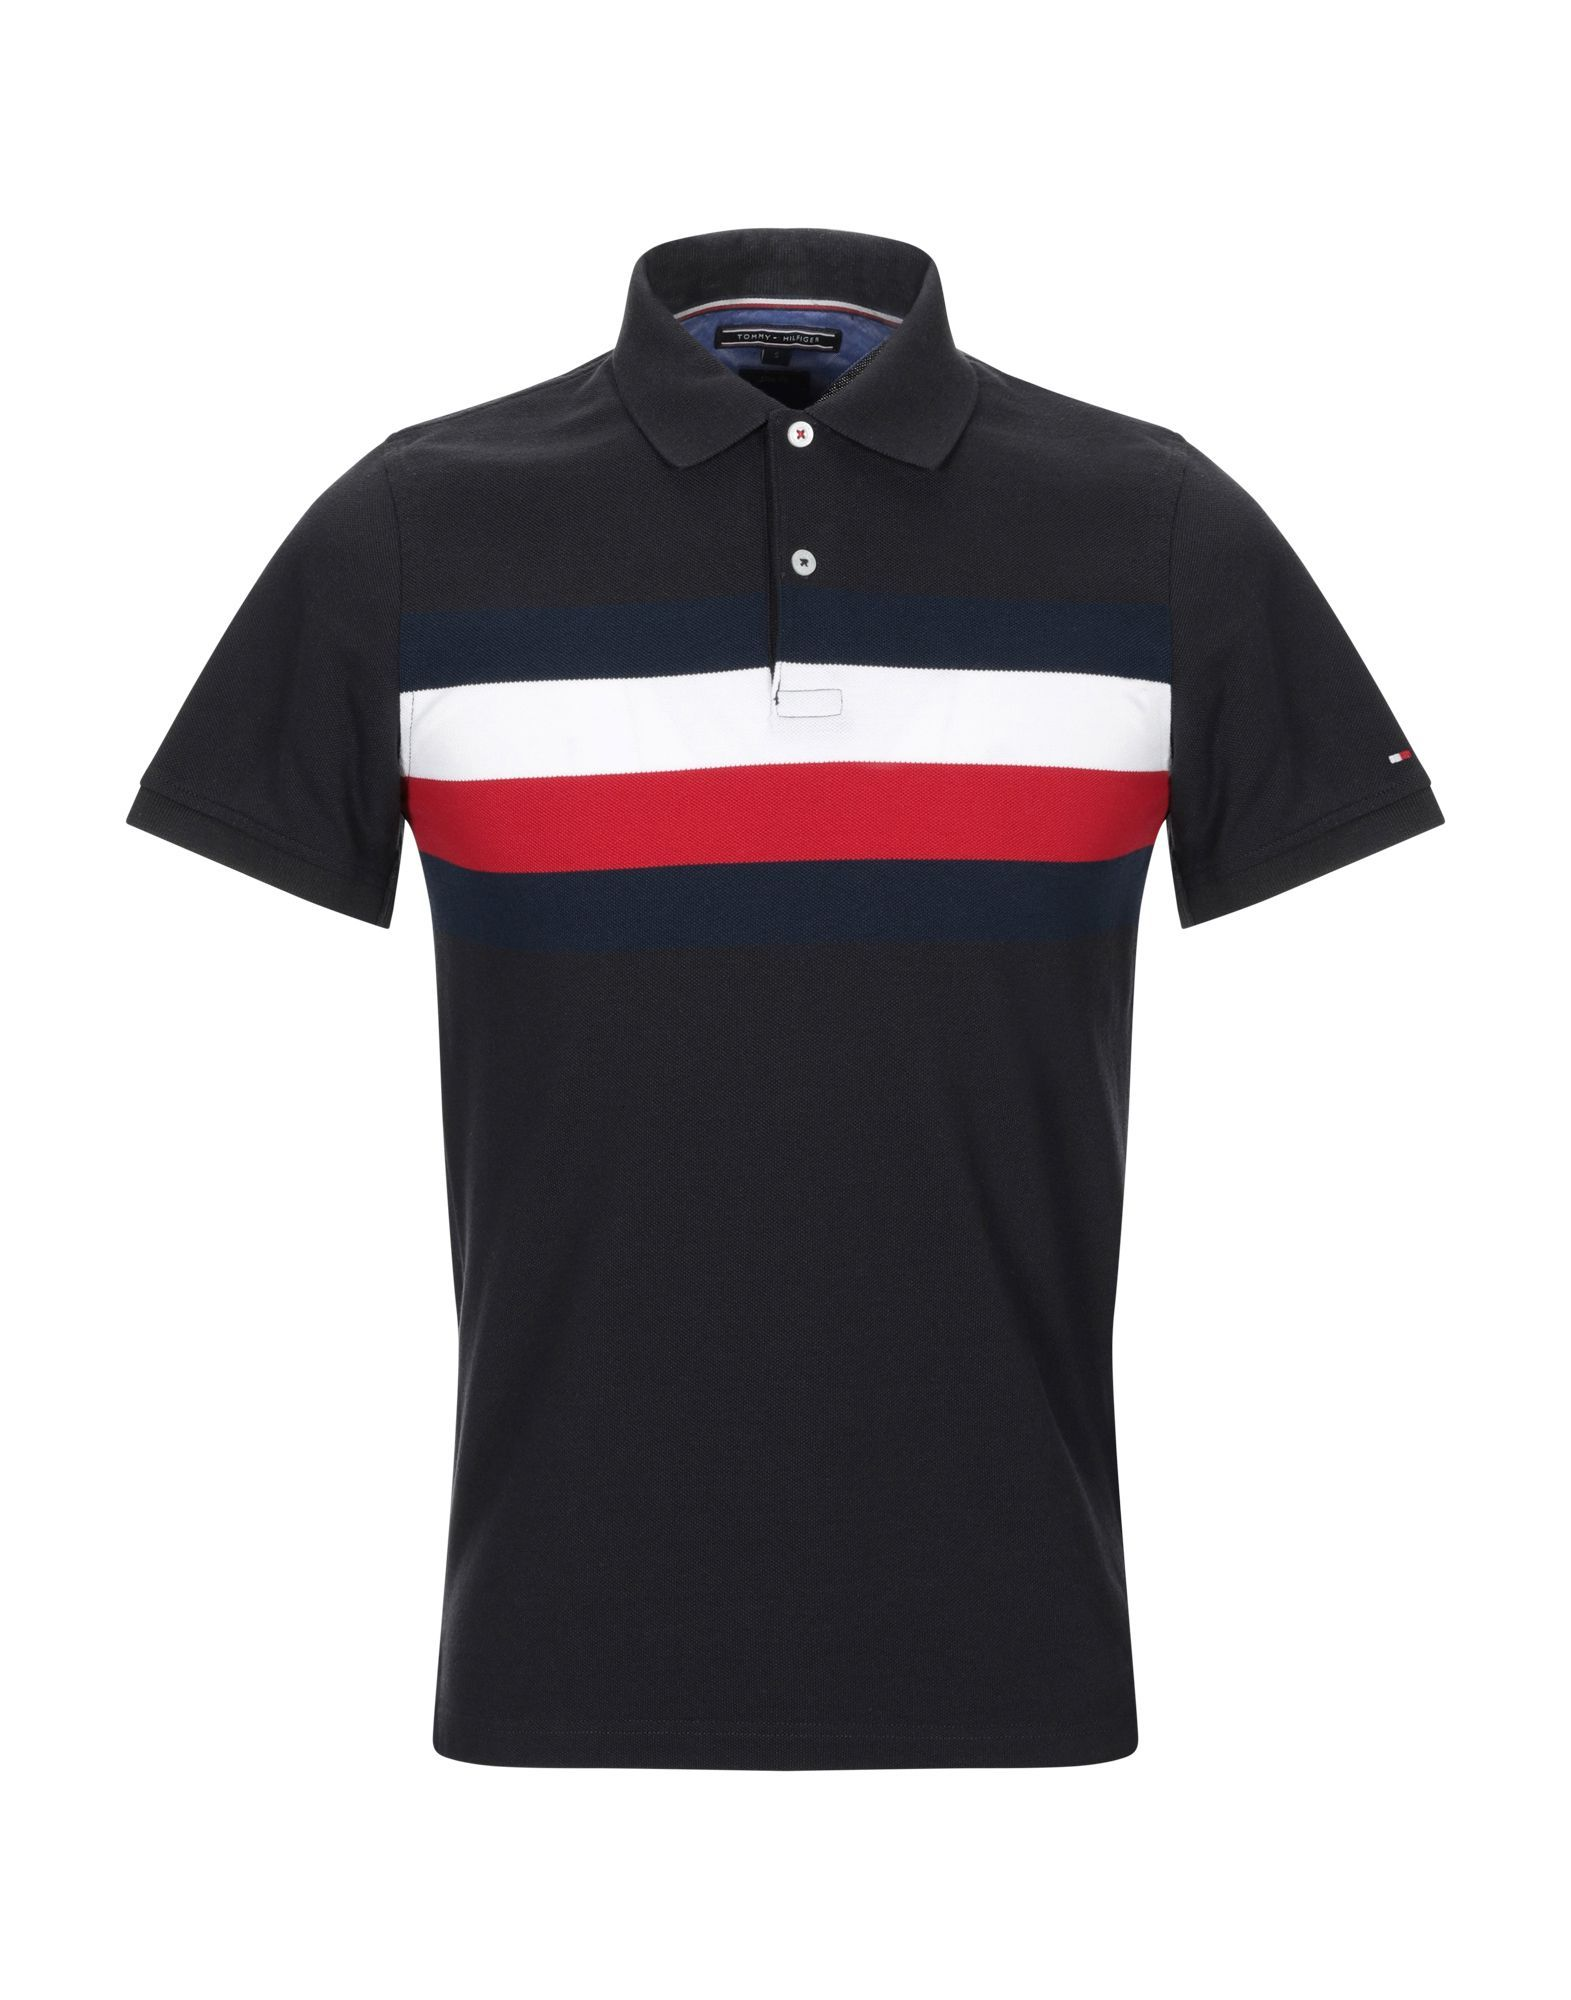 884c509d37216 TOMMY HILFIGER POLO SHIRTS. #tommyhilfiger #cloth | Tommy Hilfiger ...